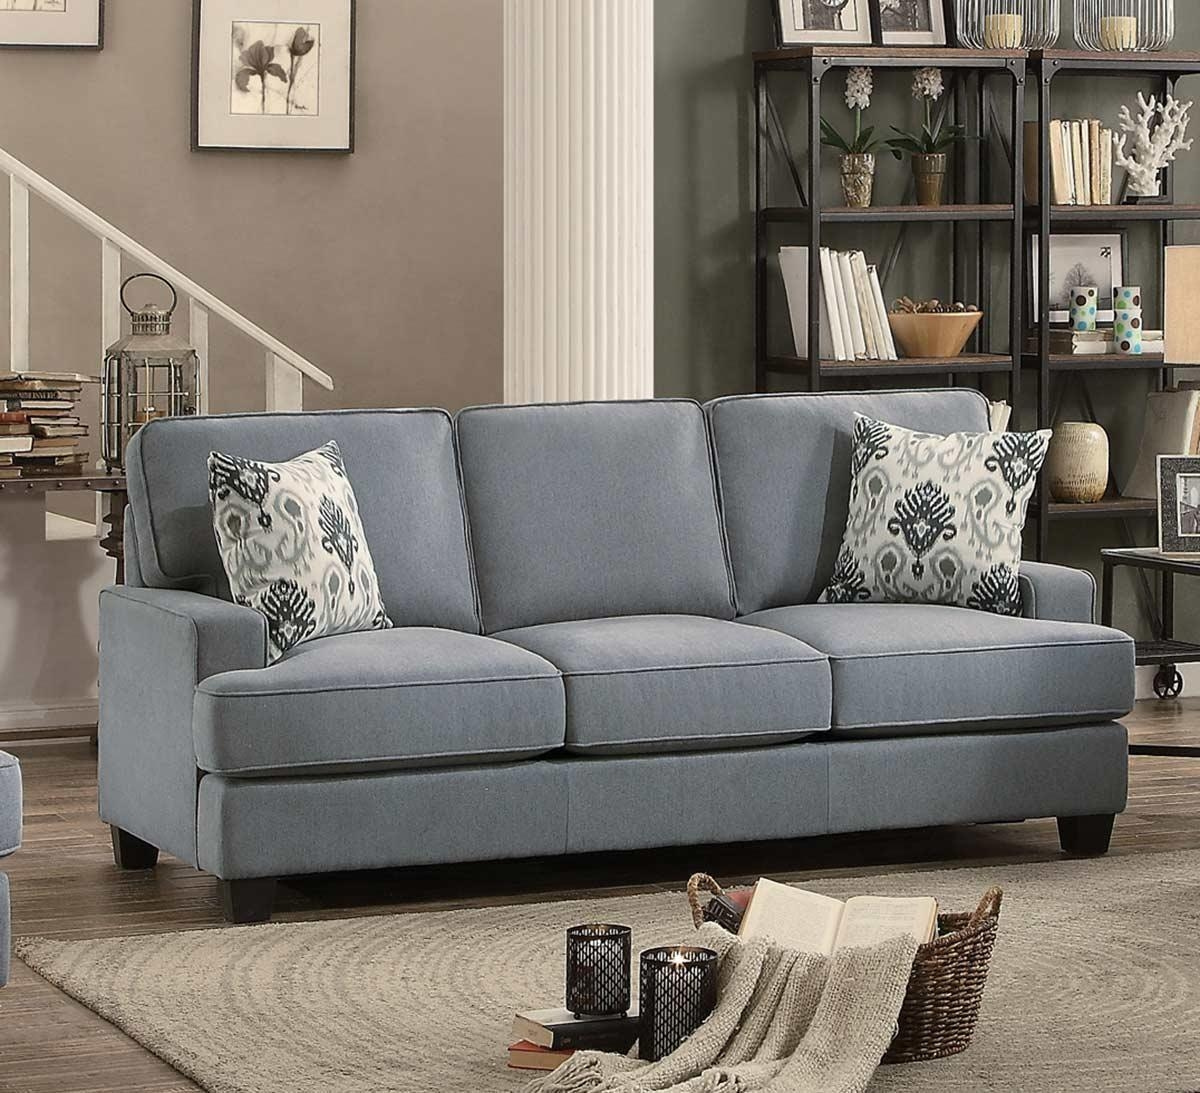 Homelegance Kenner Sofa Set – Gray Fabric 8245Gy Sofa Set With Regard To Homelegance Sofas (Image 10 of 20)